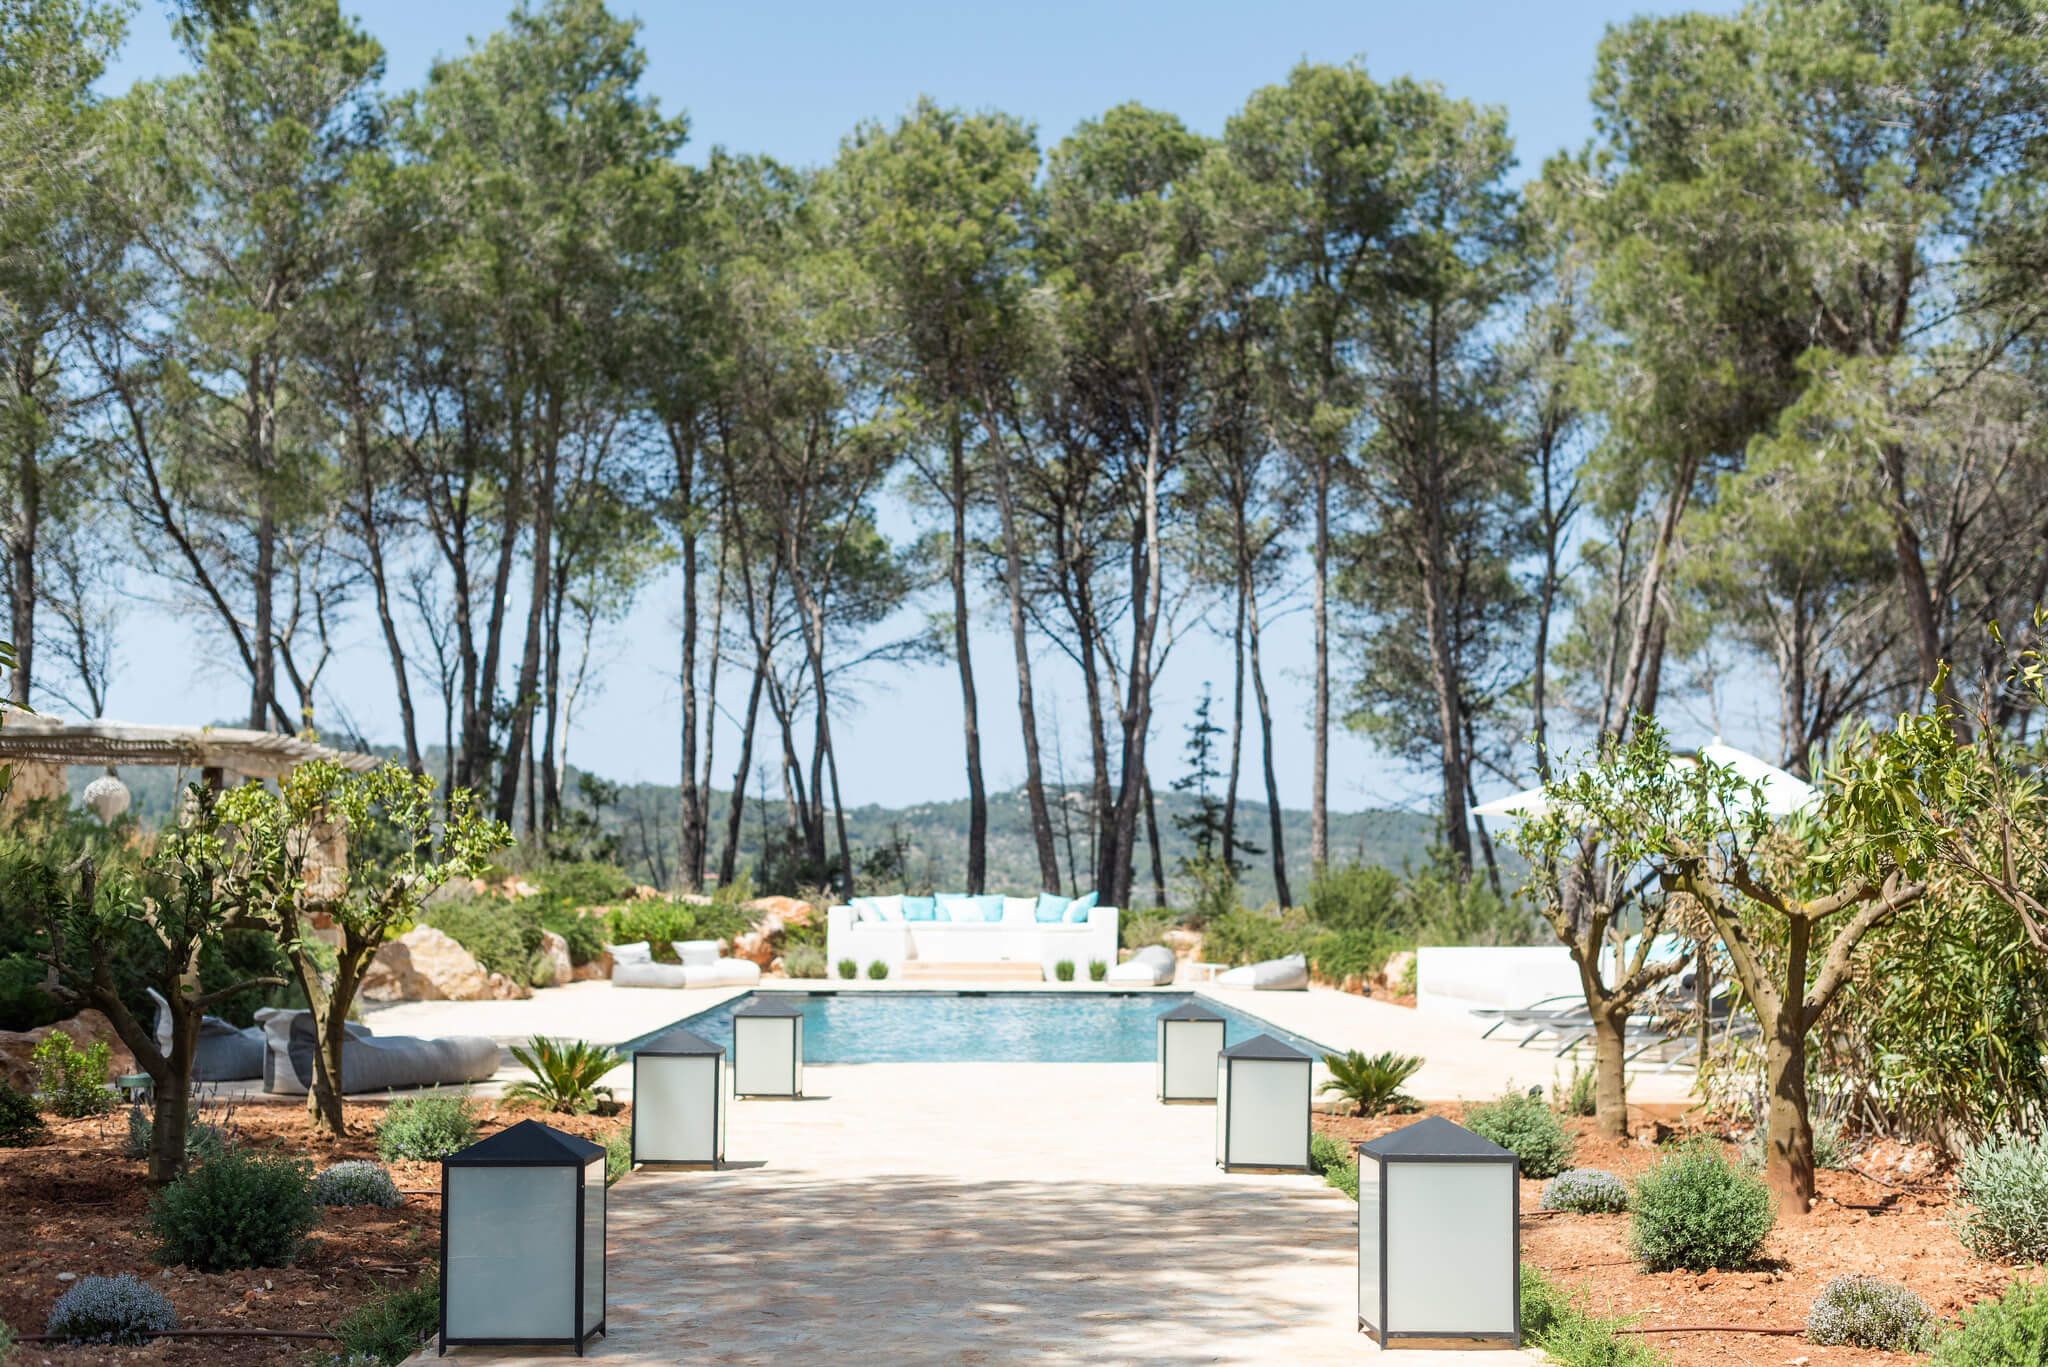 https://www.white-ibiza.com/wp-content/uploads/2020/05/white-ibiza-villas-can-terra-surrounded-by-forest.jpg